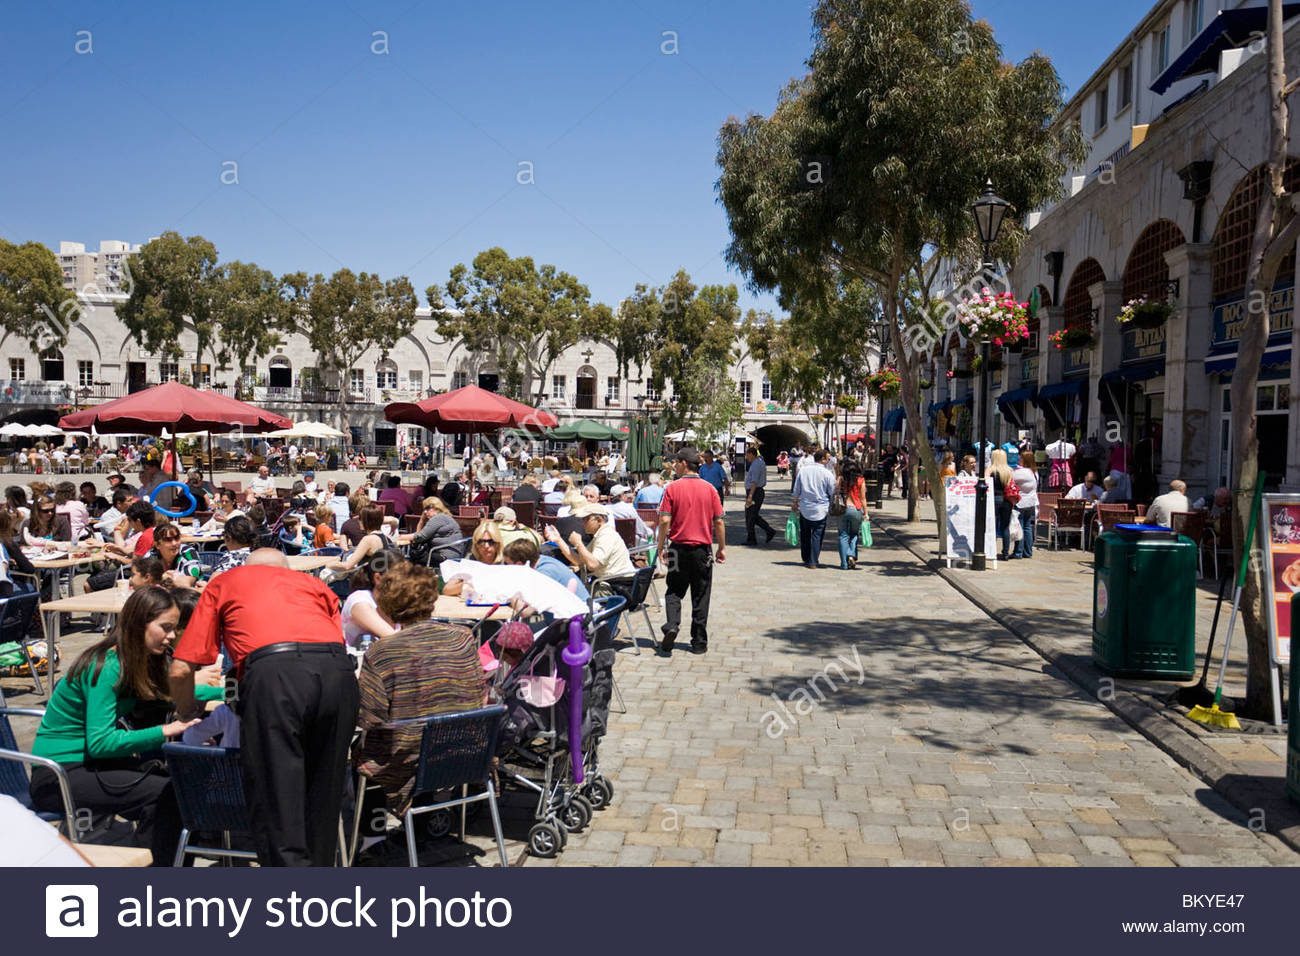 Grand Casemates Square in Gibraltar, shopping and lunch in the British Colony, Province Malaga, Andalucia, Spain - Stock Image